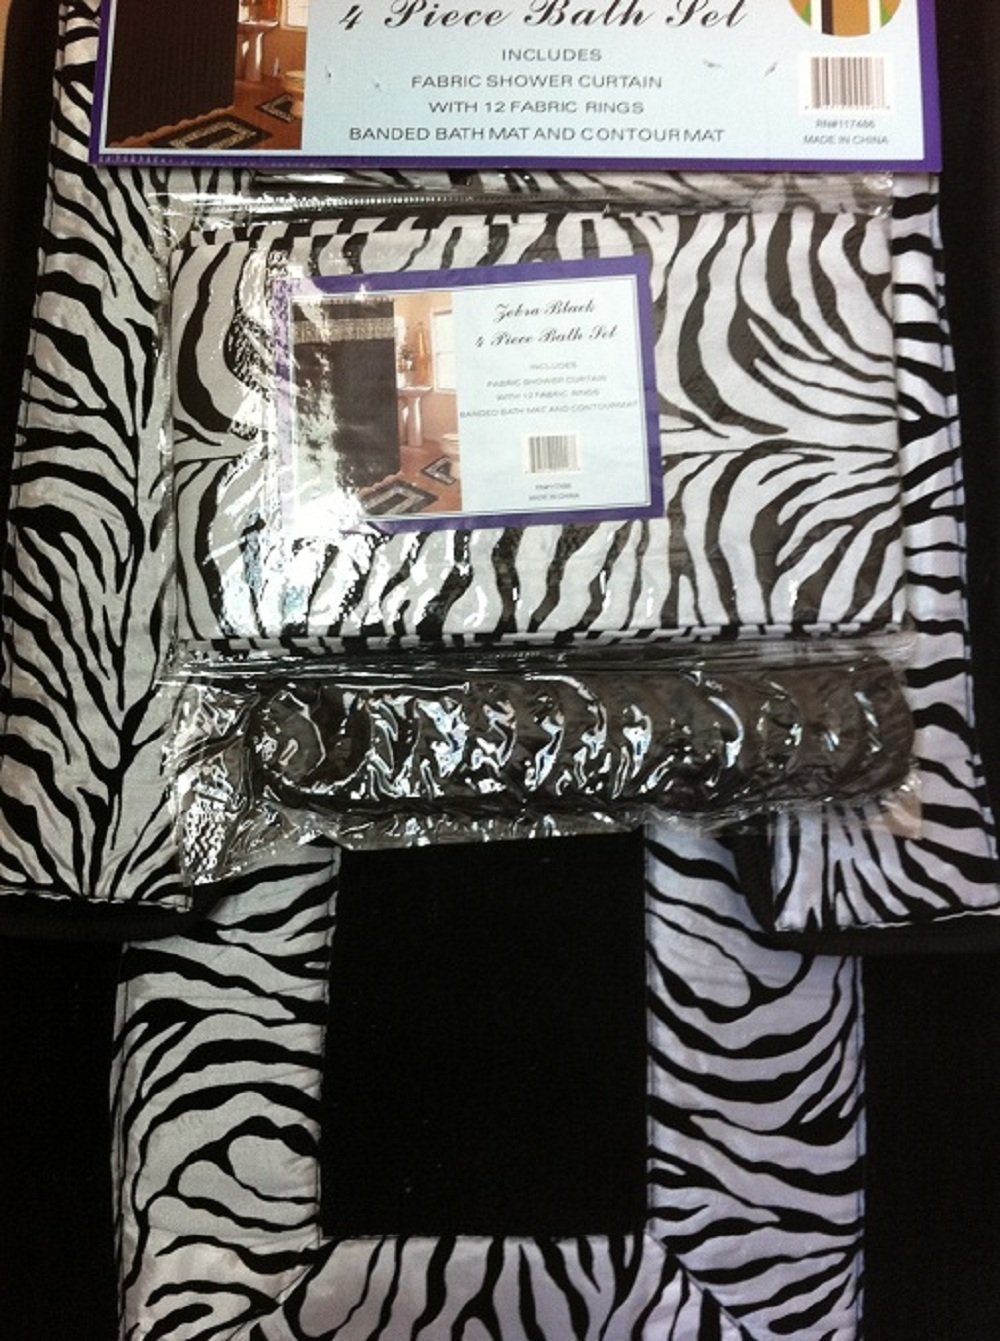 Amazon.com: 4 Piece Bath Rug Set/ 3 Piece Black Zebra Bathroom ...